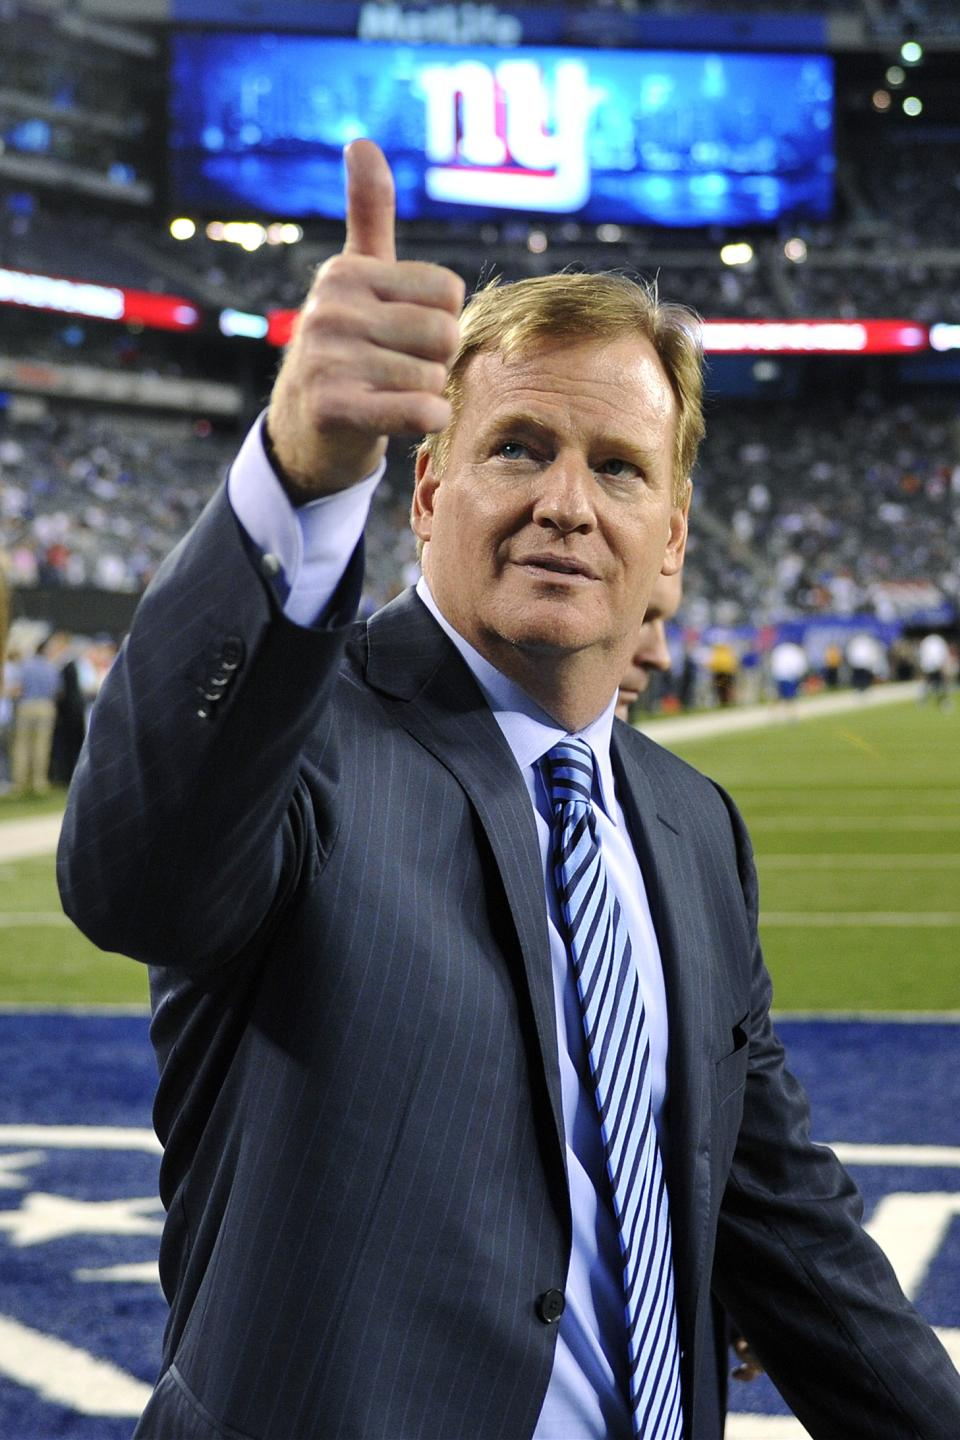 Commissioner Roger Goodell gestures to fans before an NFL football game between the New York Giants and the Dallas Cowboys, Wednesday, Sept. 5, 2012, in East Rutherford, N.J. (AP Photo/Bill Kostroun)